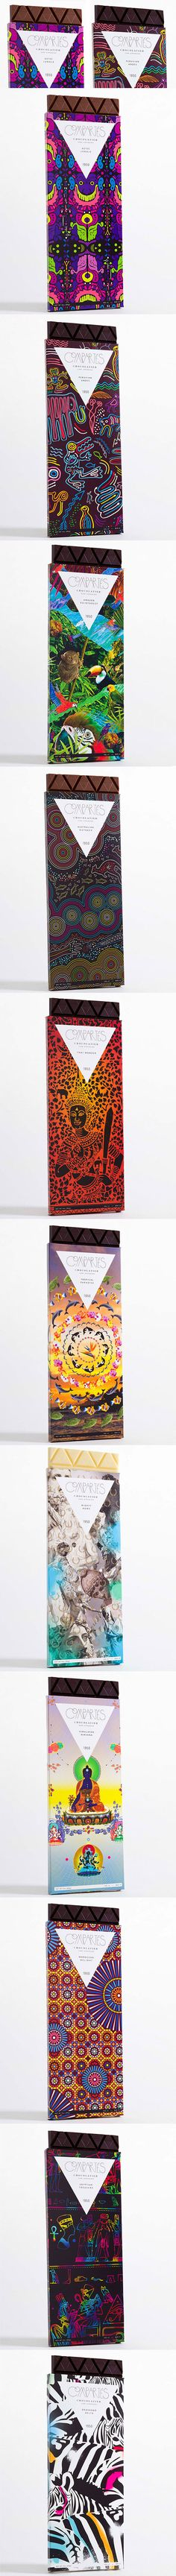 Chocolate Bars - World Series Compartes latest World Series chocolate range. Nickles Nickles Nickles Valk Chuah DielineCompartes latest World Series chocolate range. Cool Packaging, Print Packaging, Packaging Ideas, Packaging Design Inspiration, Graphic Design Inspiration, Style Inspiration, Food Branding, Branding Design, Chocolate Brands